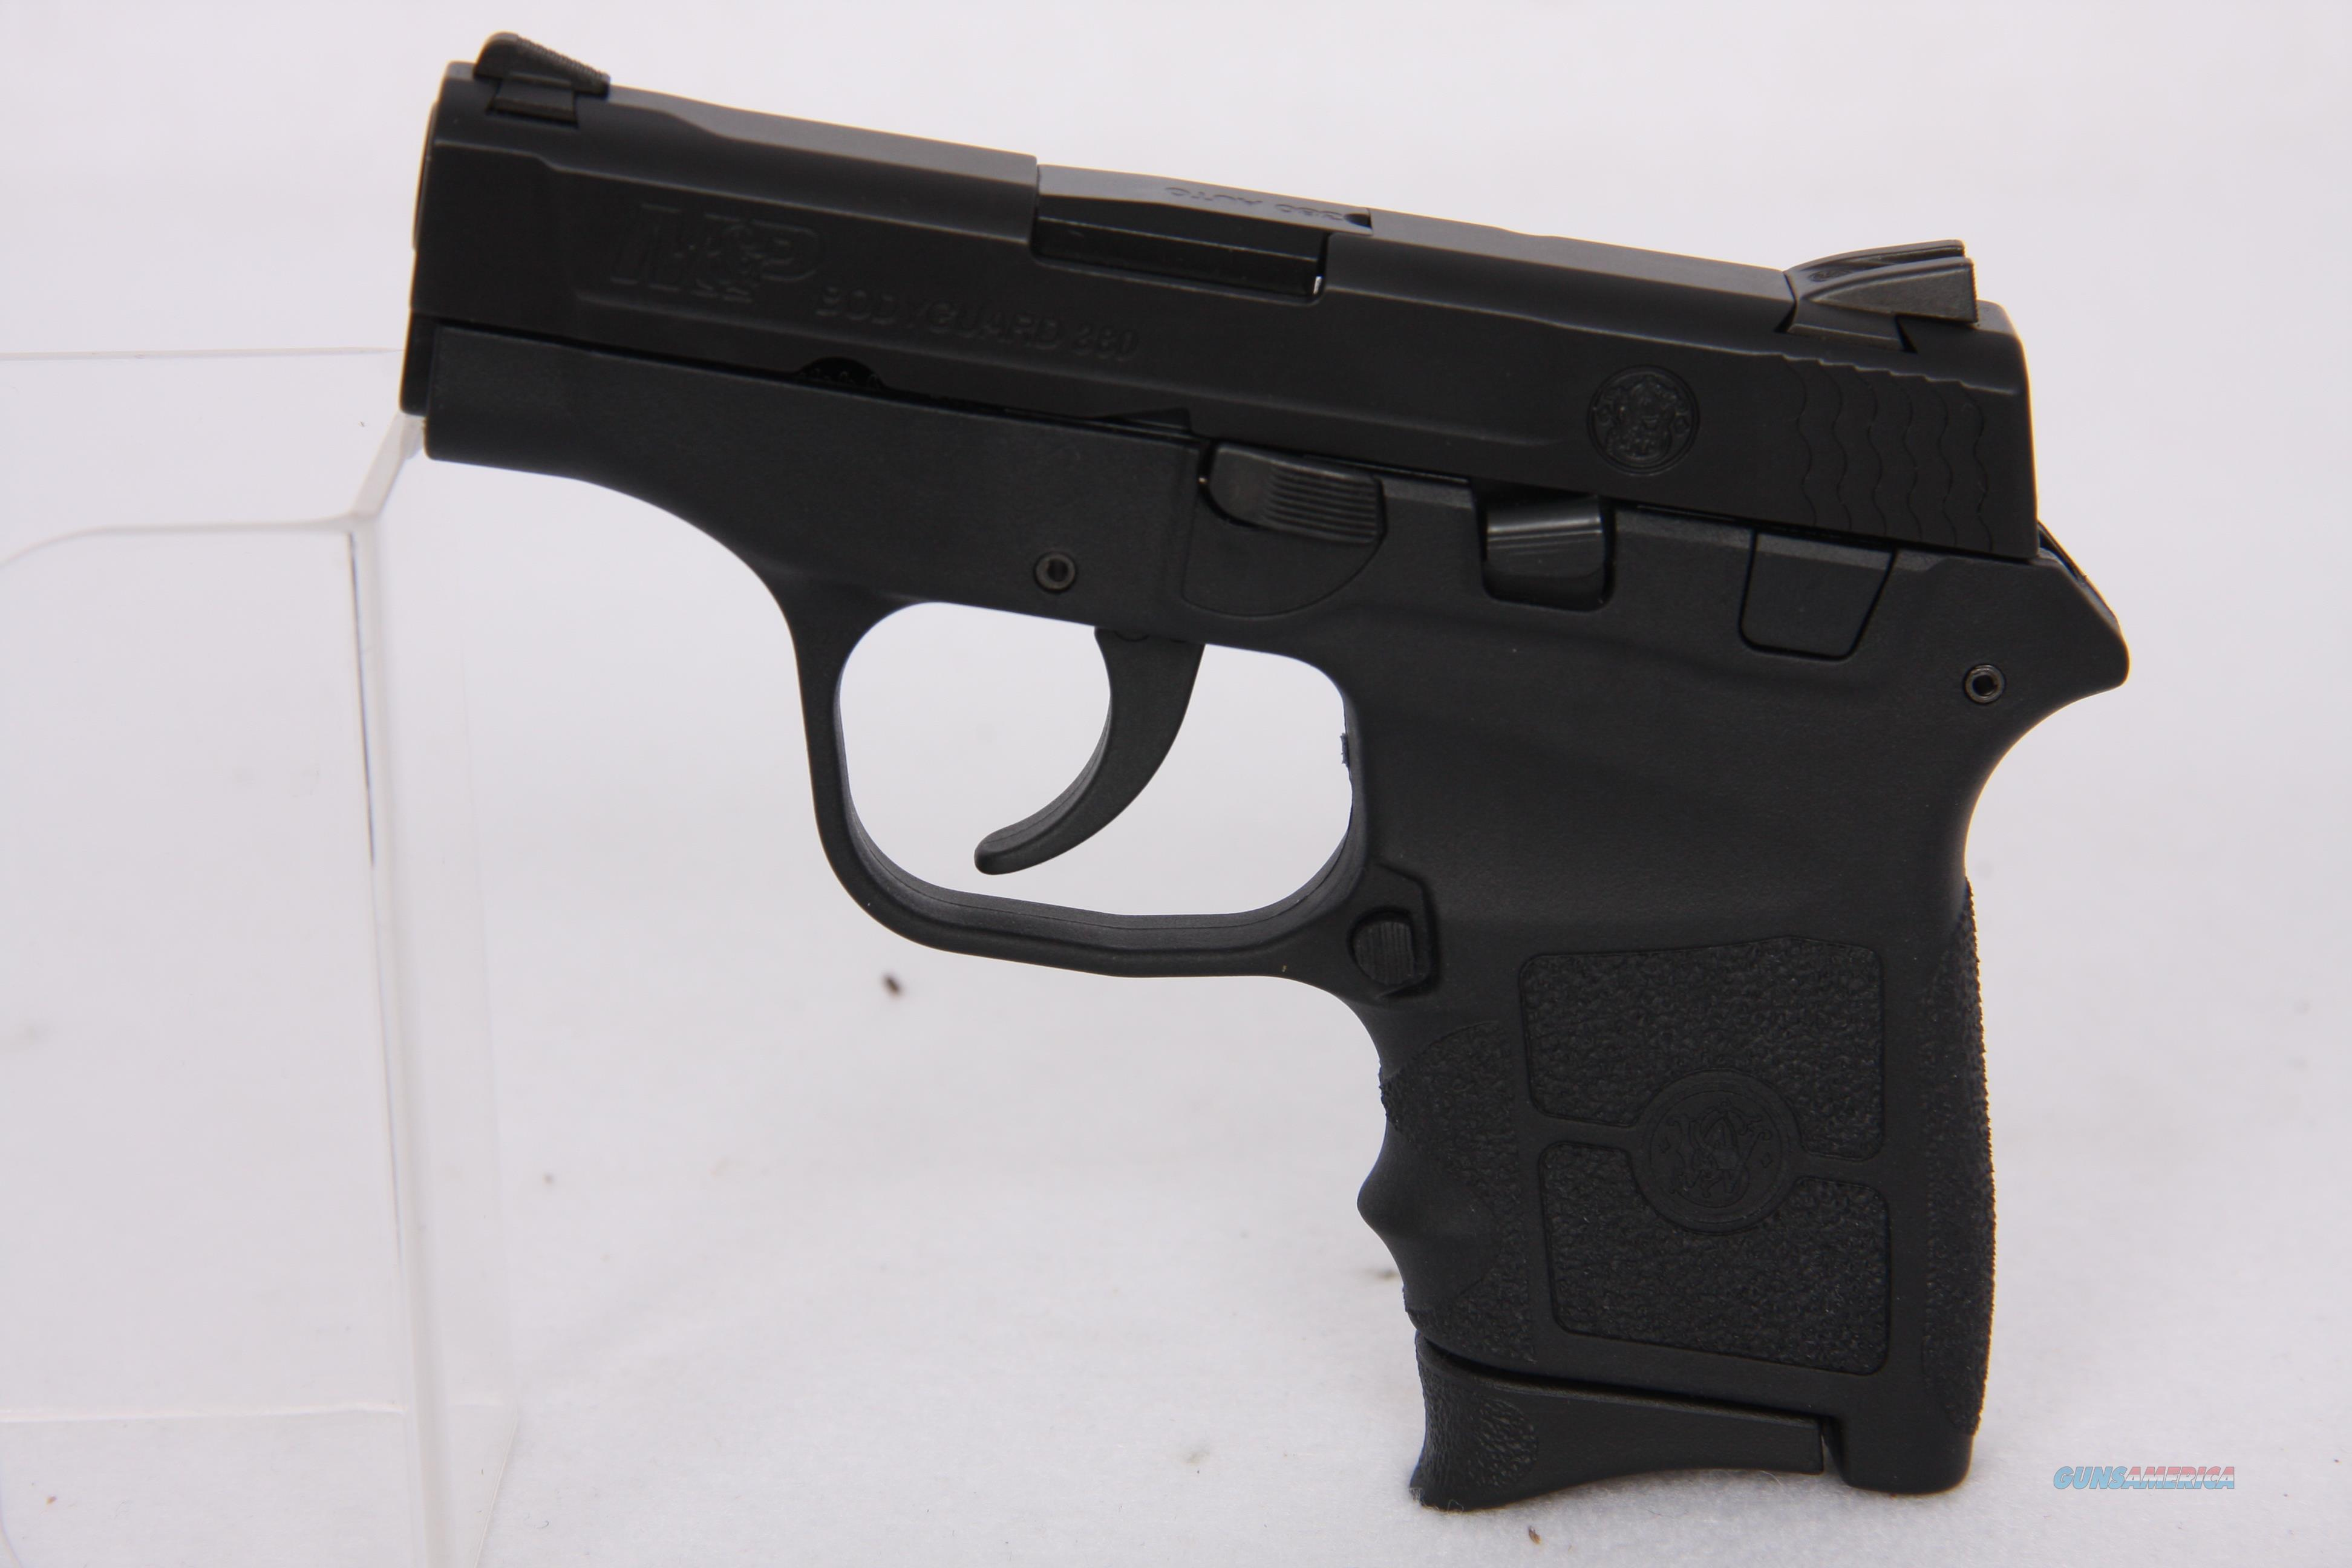 Smith & Wesson M&P Bodyguard .380ACP 2.75in 6rd  Guns > Pistols > Smith & Wesson Pistols - Autos > Polymer Frame